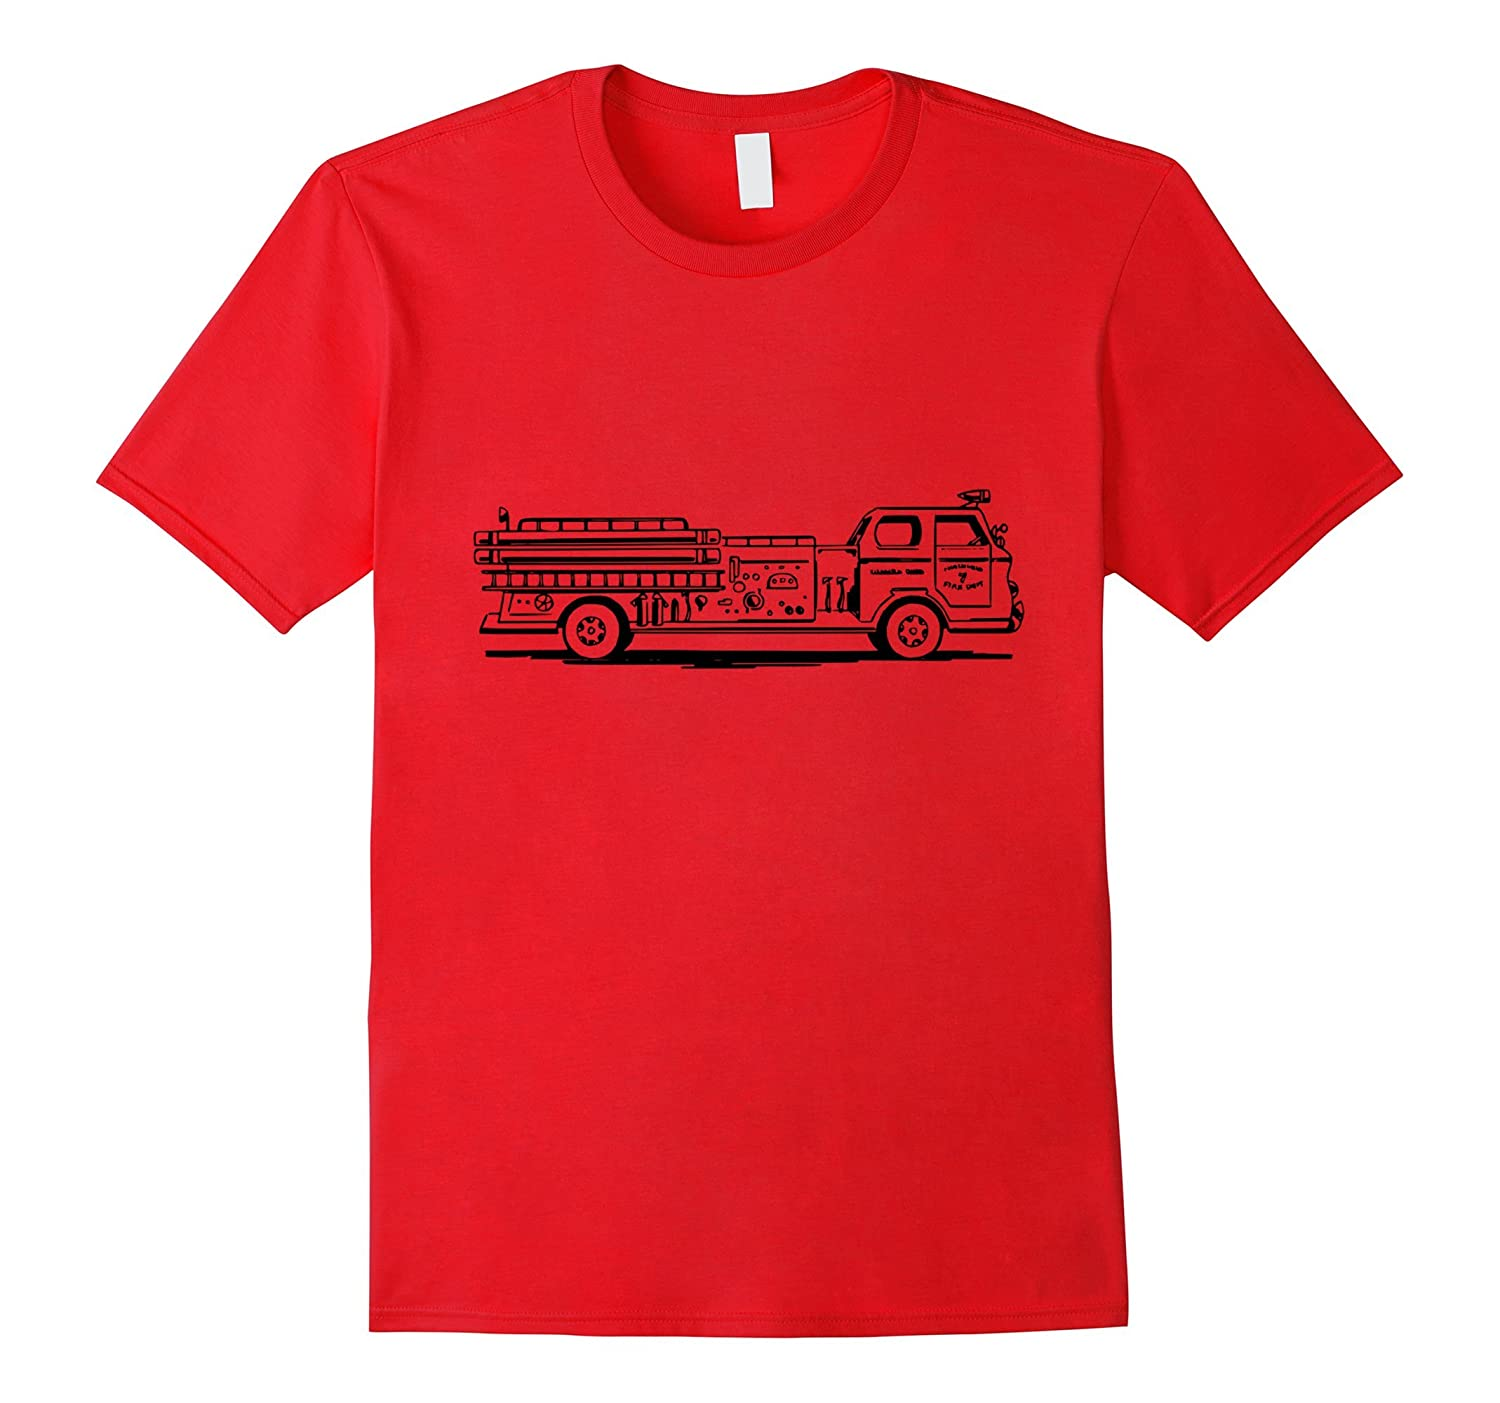 Big Firetruck t-shirt Fireman Firefighter Rescue Vehicle-T-Shirt